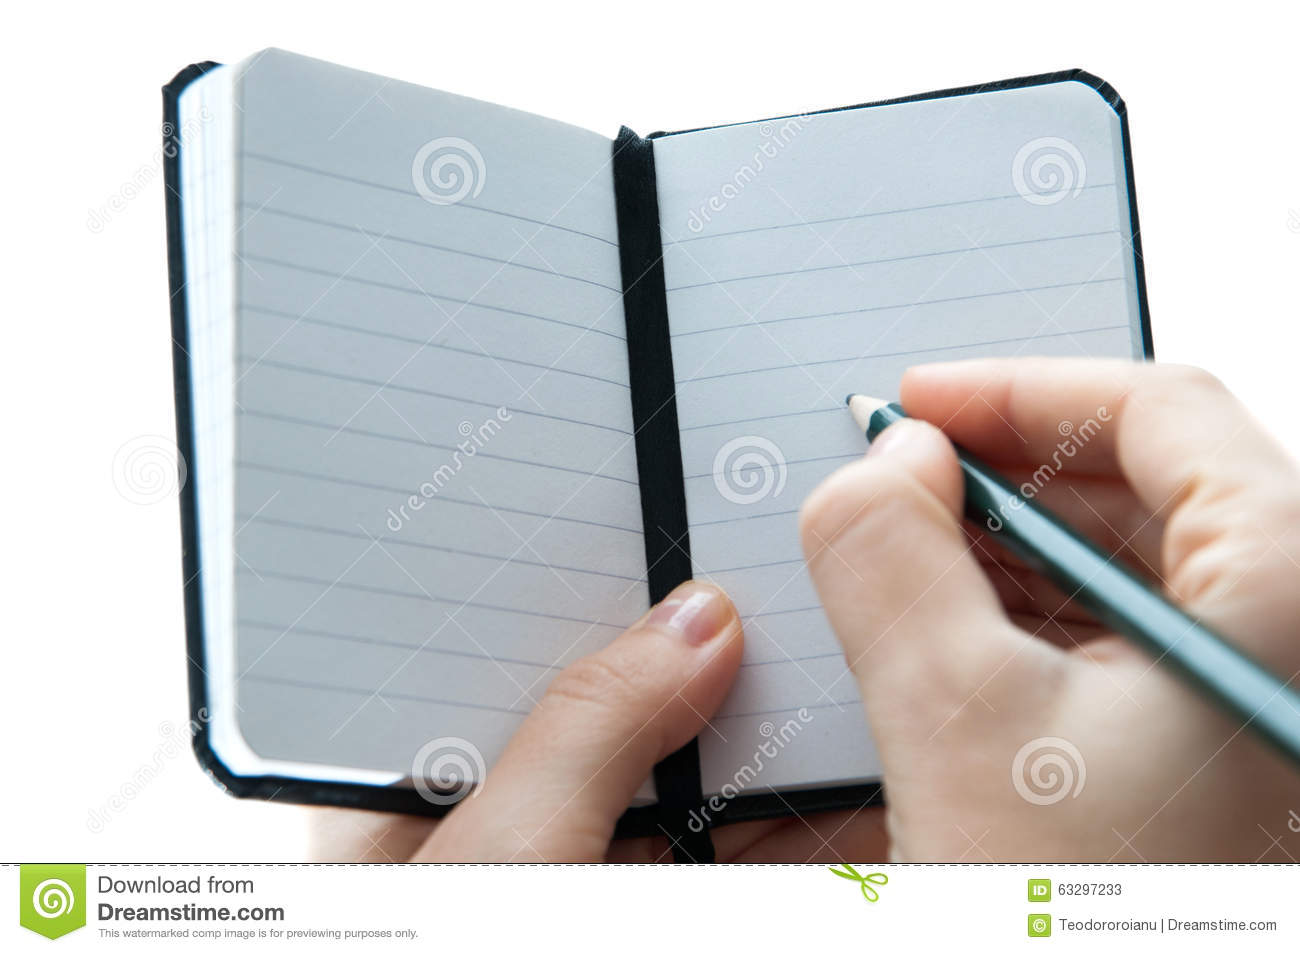 Notebook Klein Small Notebook Stock Image Image Of Pencil Hands Small 63297233